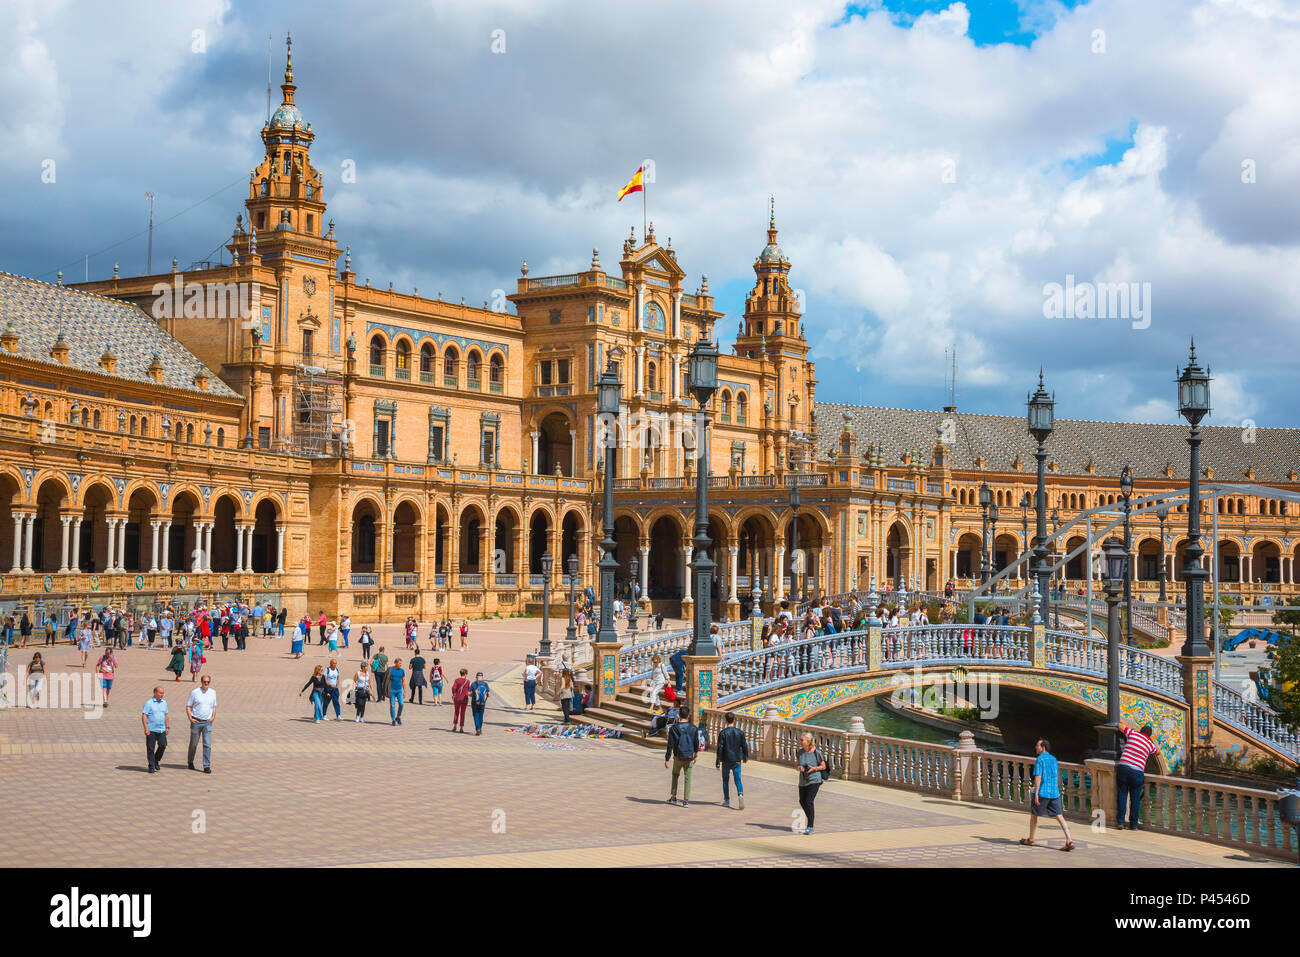 Plaza de Espana Seville, view of people walking through the Plaza de Espana in Seville (Sevilla) on a summer afternoon, Andalucia, Spain. - Stock Image